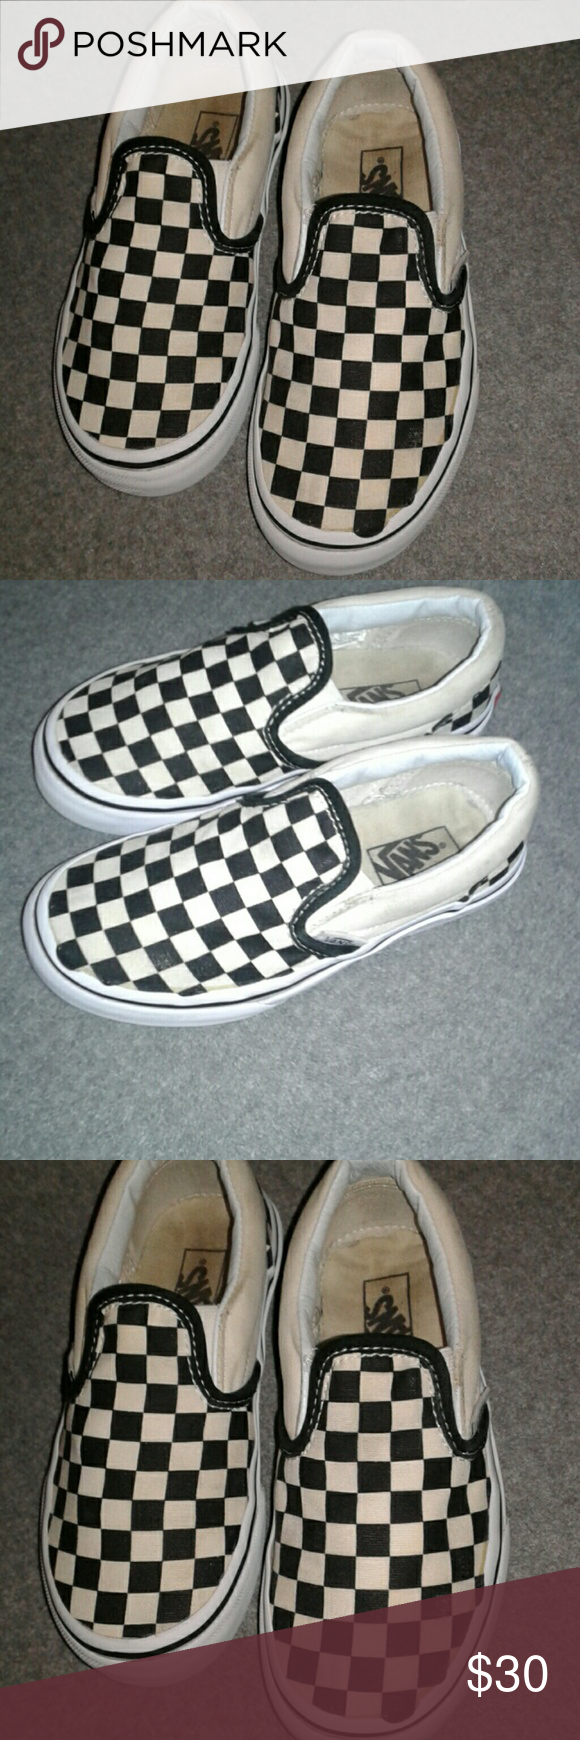 7ef3029db03239 Shoes Black and white checkered vans size 12 boys or girls Vans Shoes  Sneakers